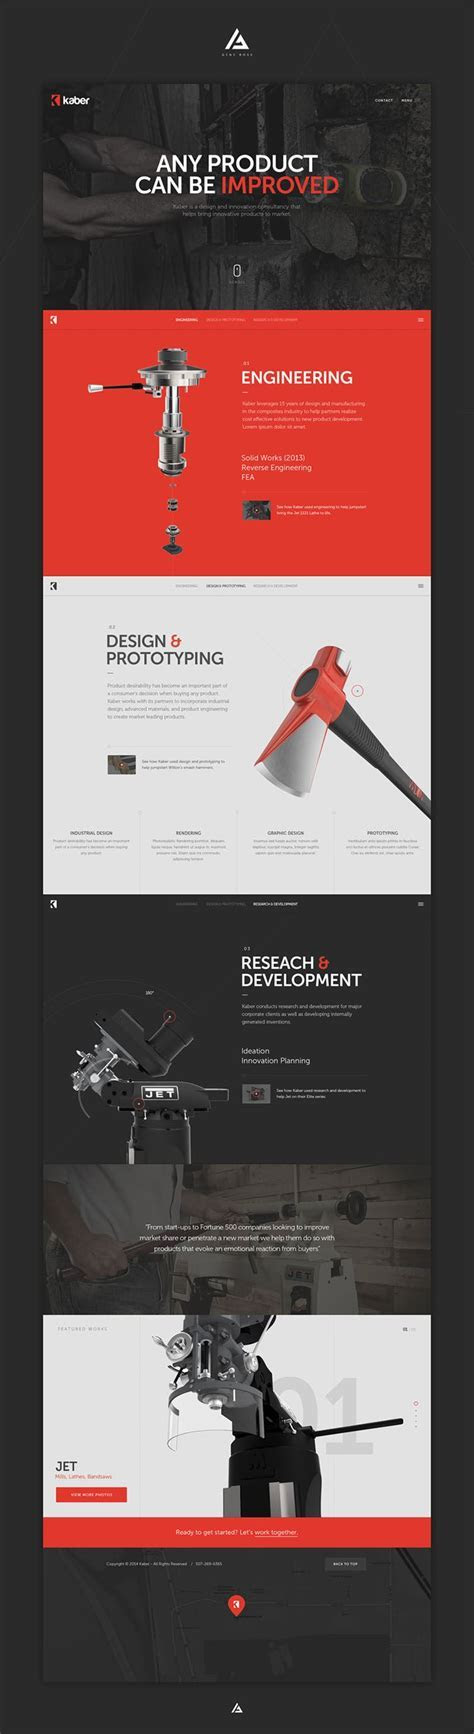 Creative Clean Web Design for Inspiration 2015